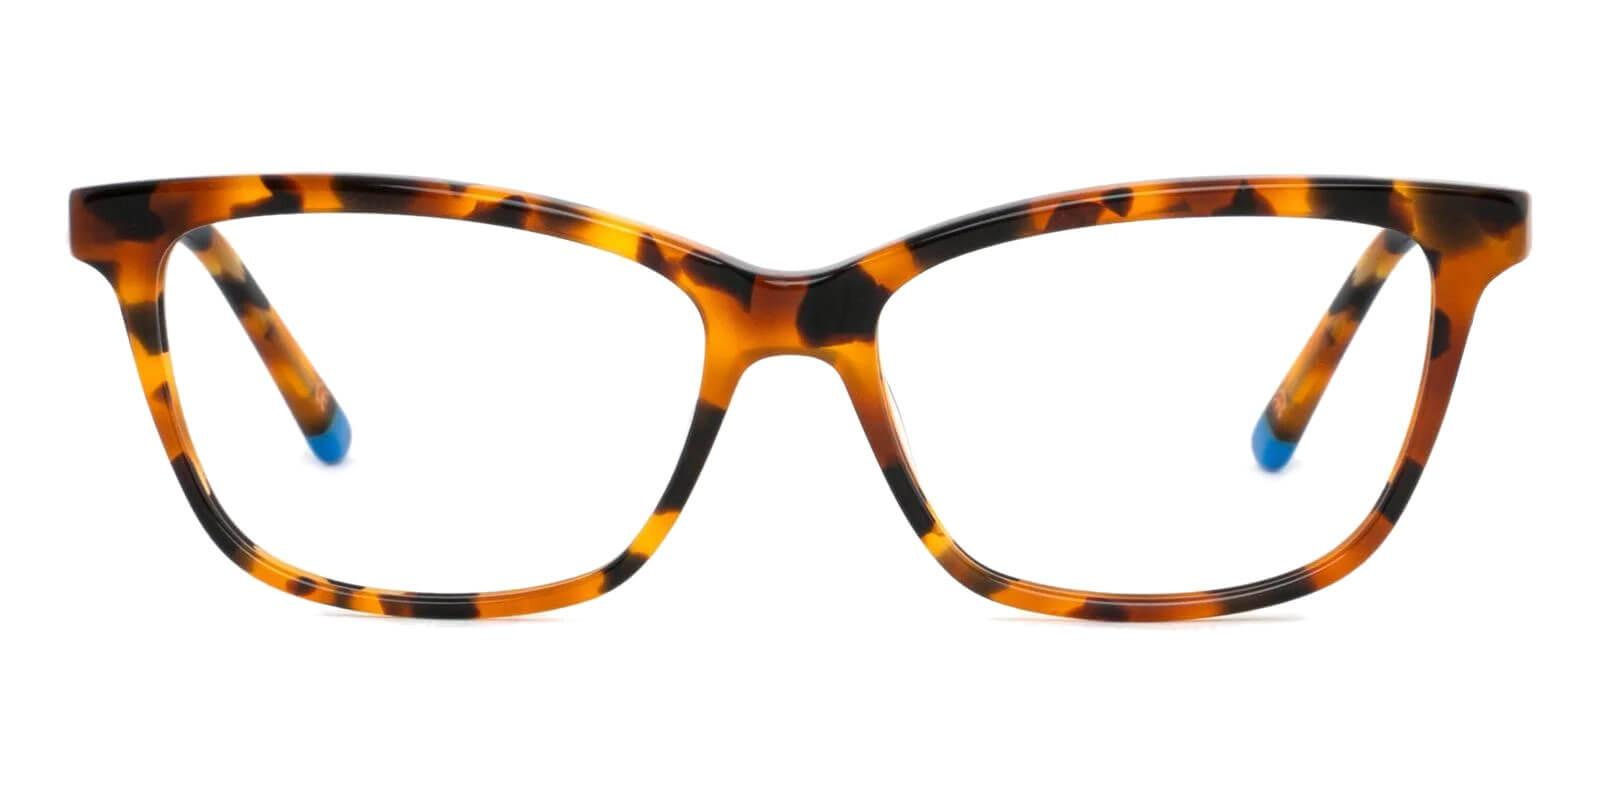 Estonia Leopard Acetate Eyeglasses , SpringHinges , UniversalBridgeFit Frames from ABBE Glasses